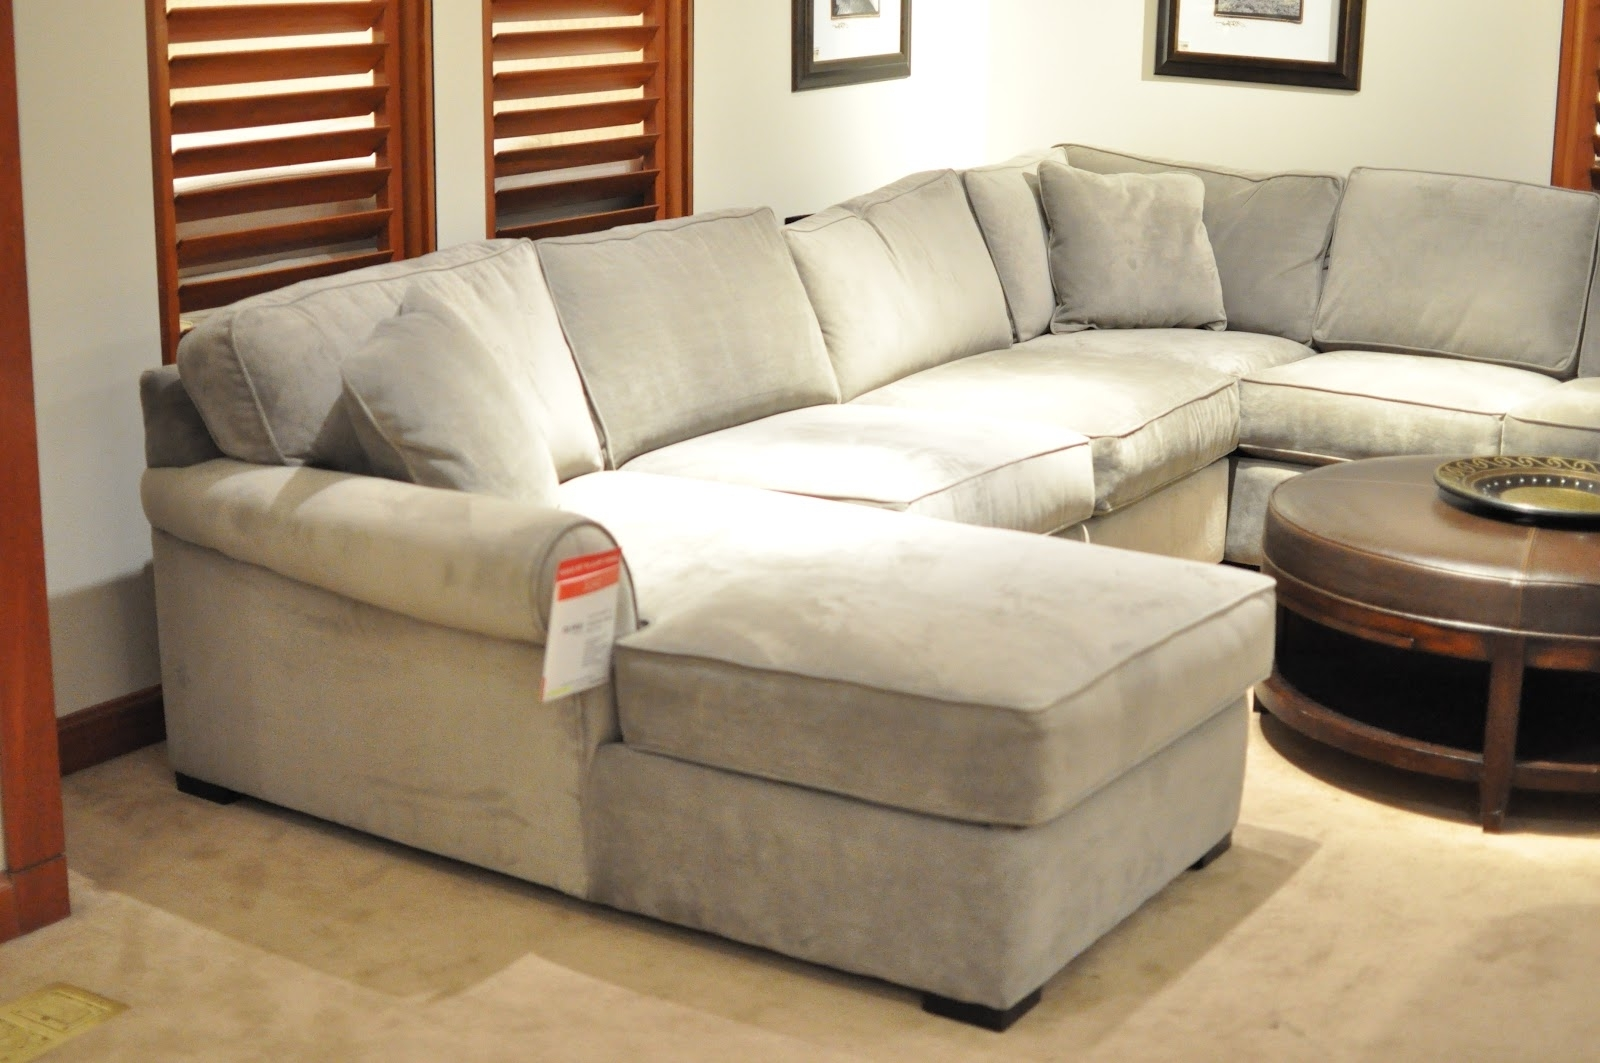 Not So Newlywed Mcgees: Shopping For A Sectional Pertaining To Most Up To Date Macys Leather Sectional Sofas (View 15 of 15)